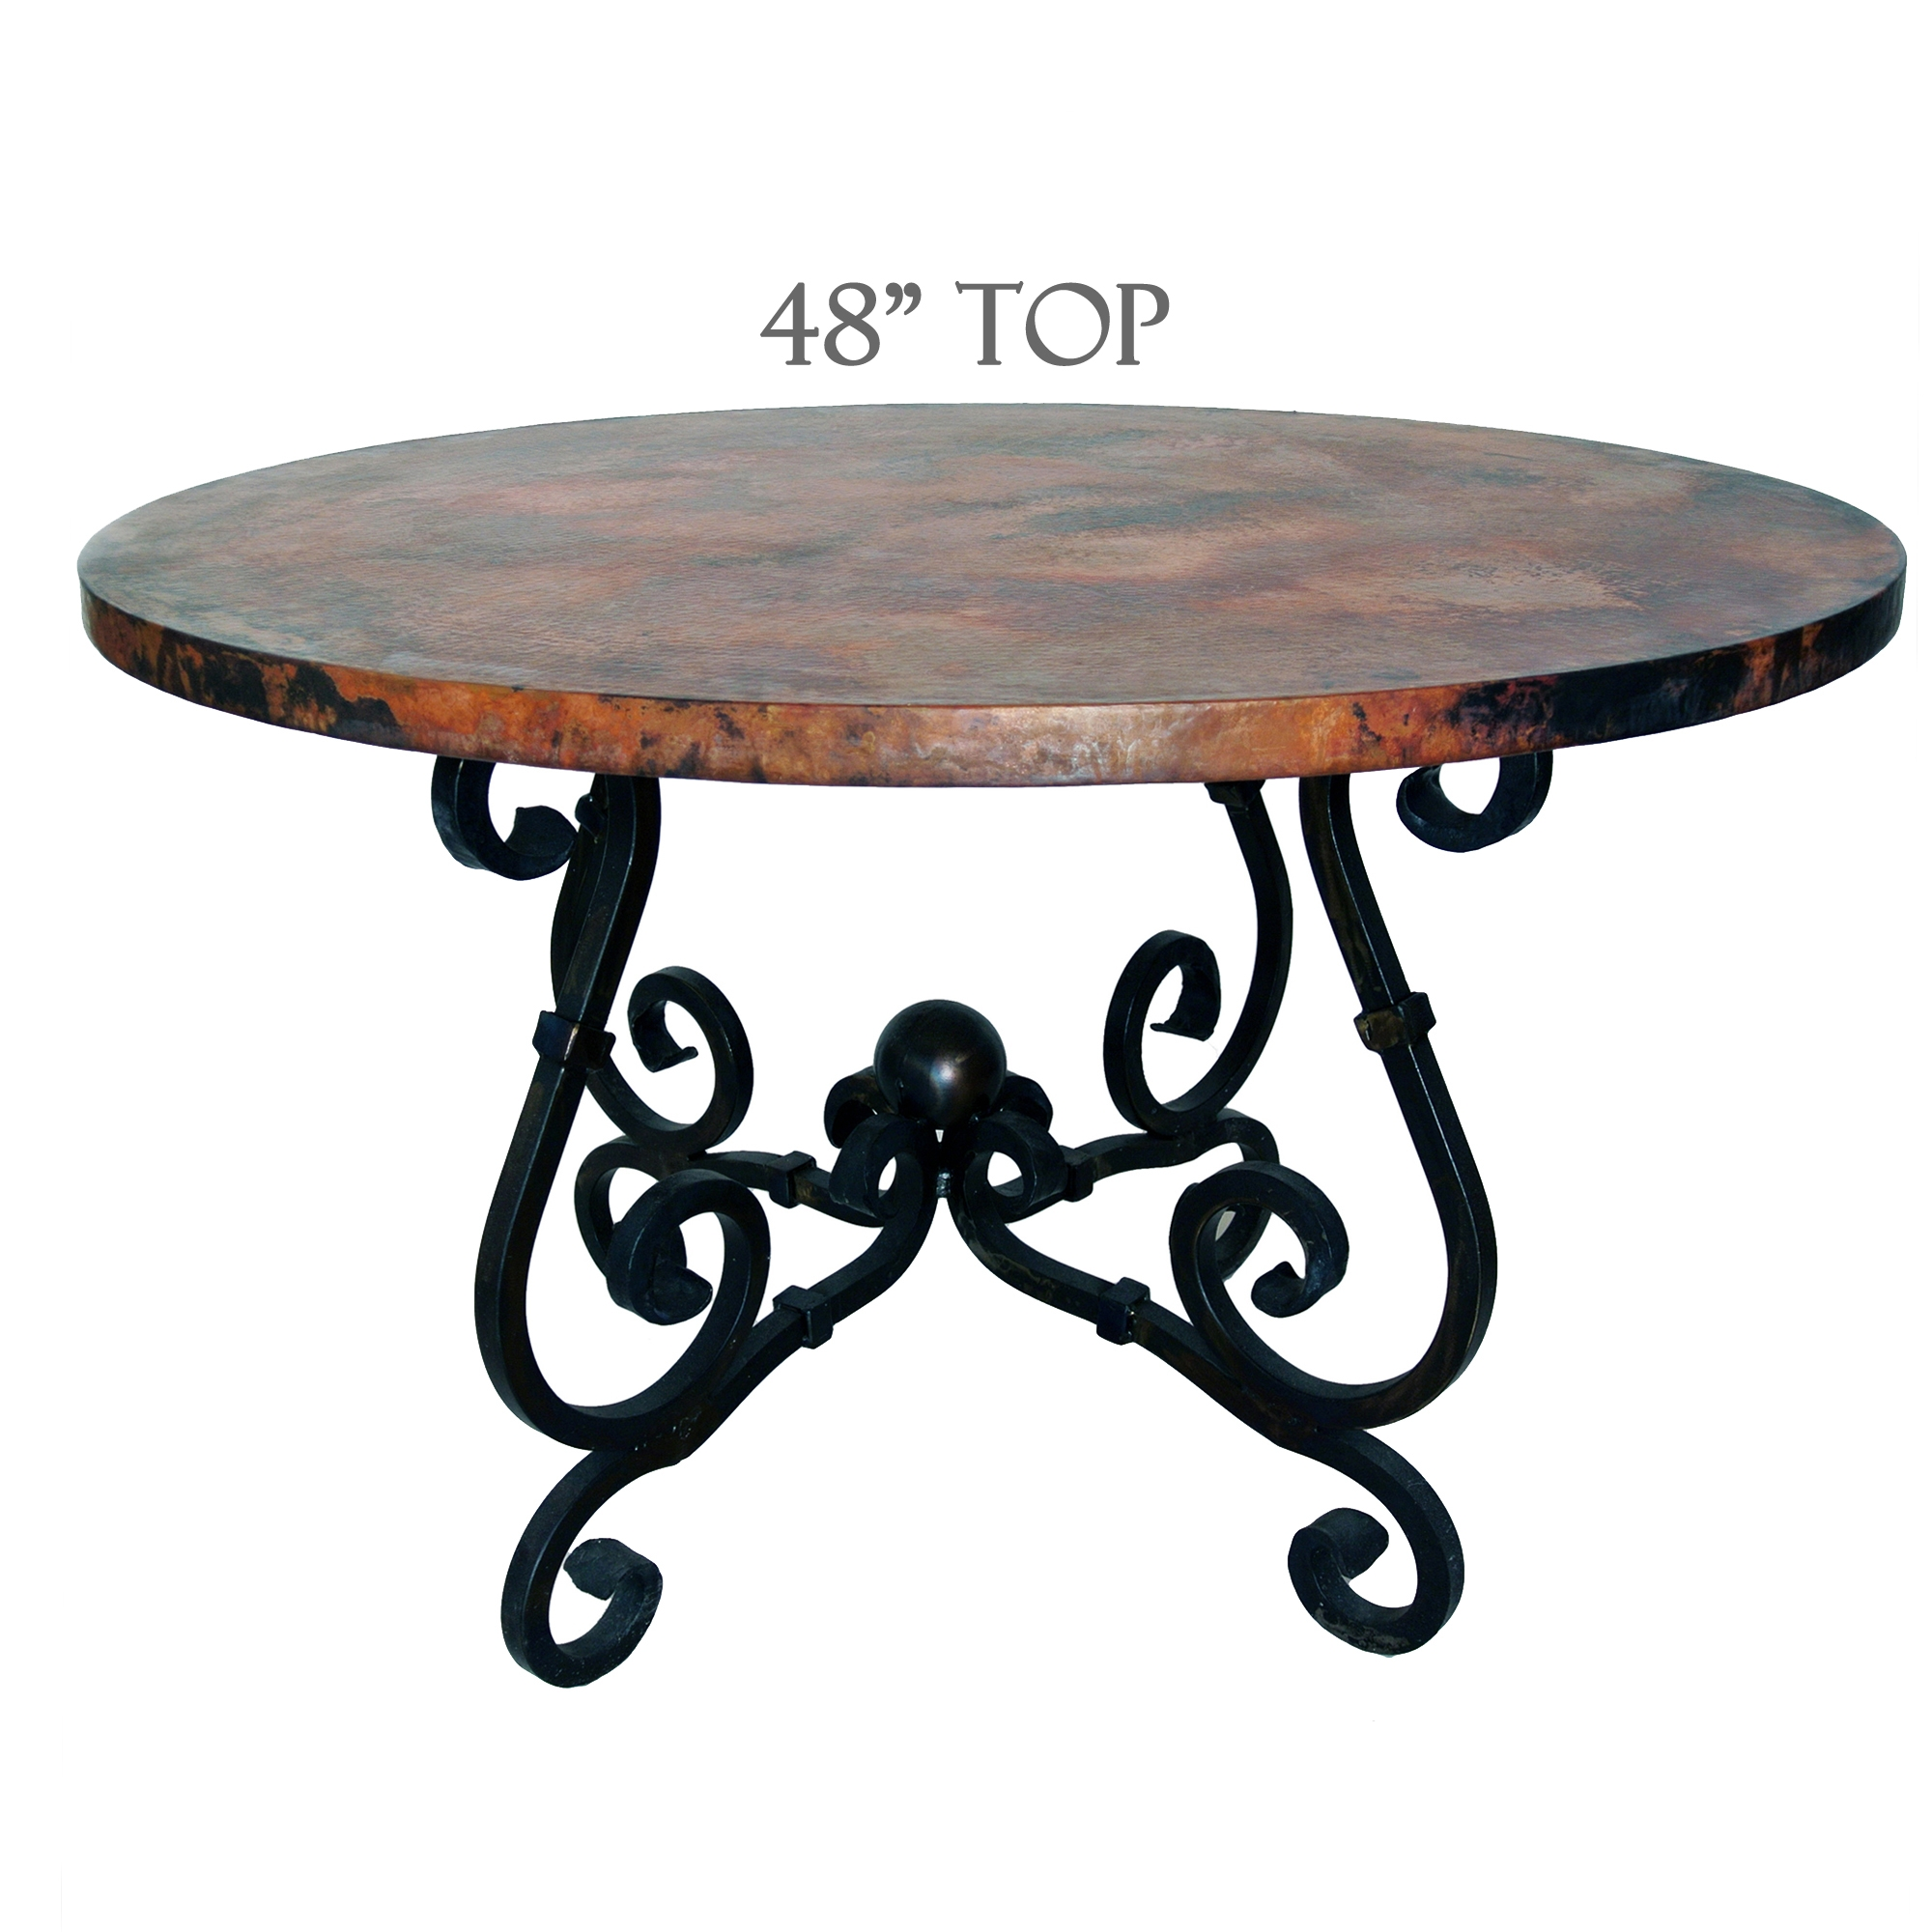 French Dining Table with 48 inch Round Copper Top : TWI M5 F 500A 2 from www.timelesswroughtiron.com size 2000 x 2000 jpeg 894kB